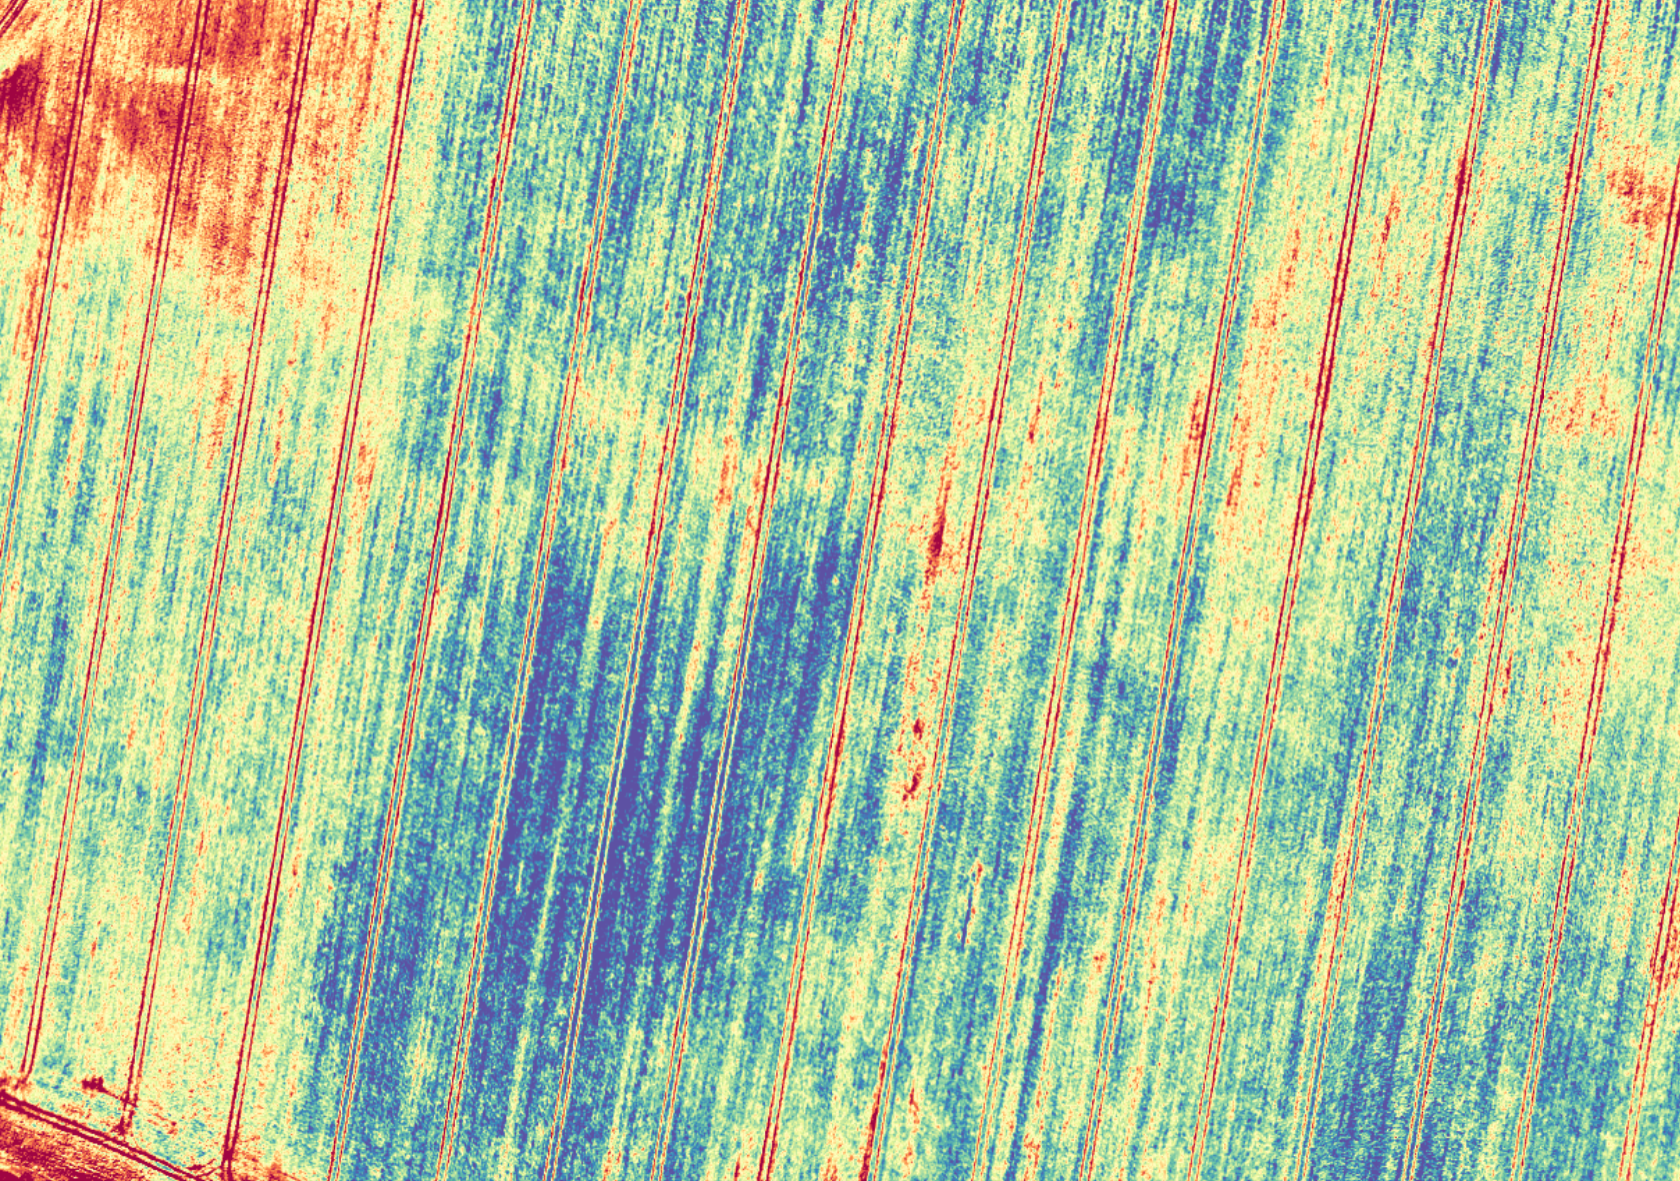 Hyperspectral camera image of crops